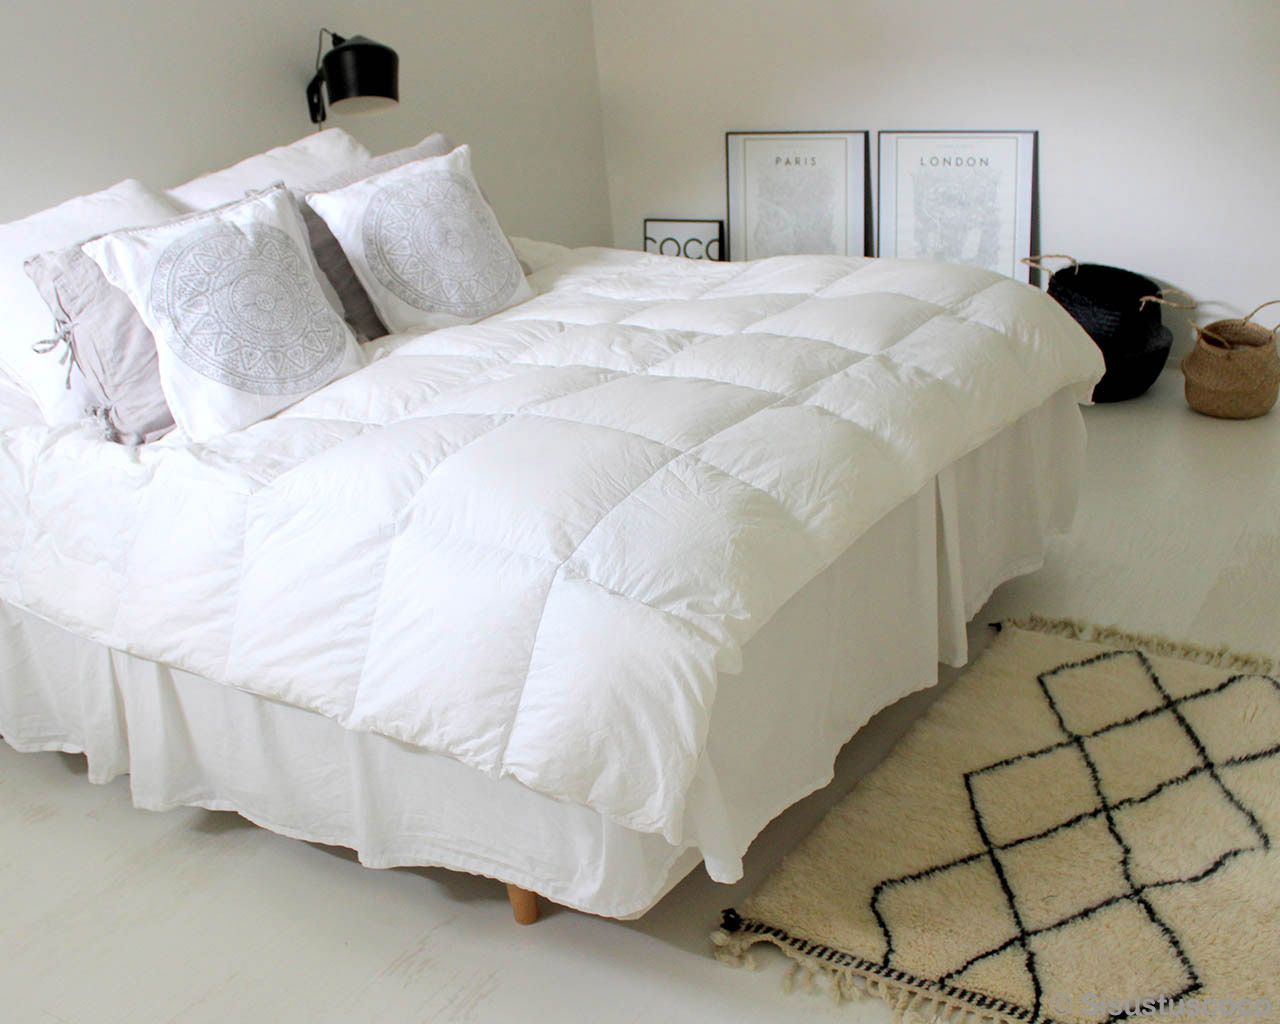 nice bed with multiple pillows moroccan cream color rugs